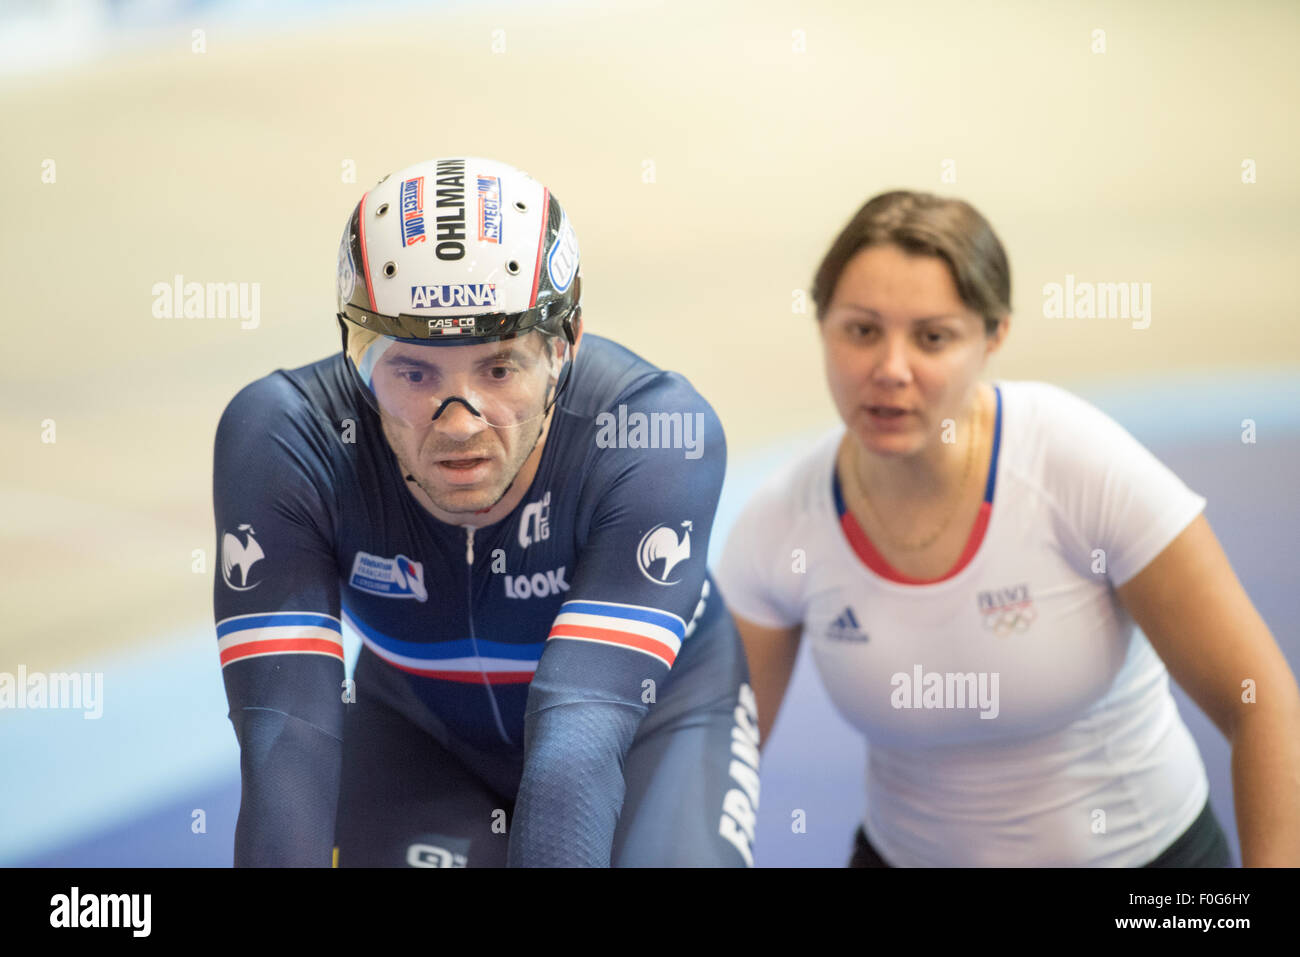 Derby, UK. 15th Aug, 2015. Francois Pervis of France is assisted by a female team helper during the Revolution Series - Stock Image